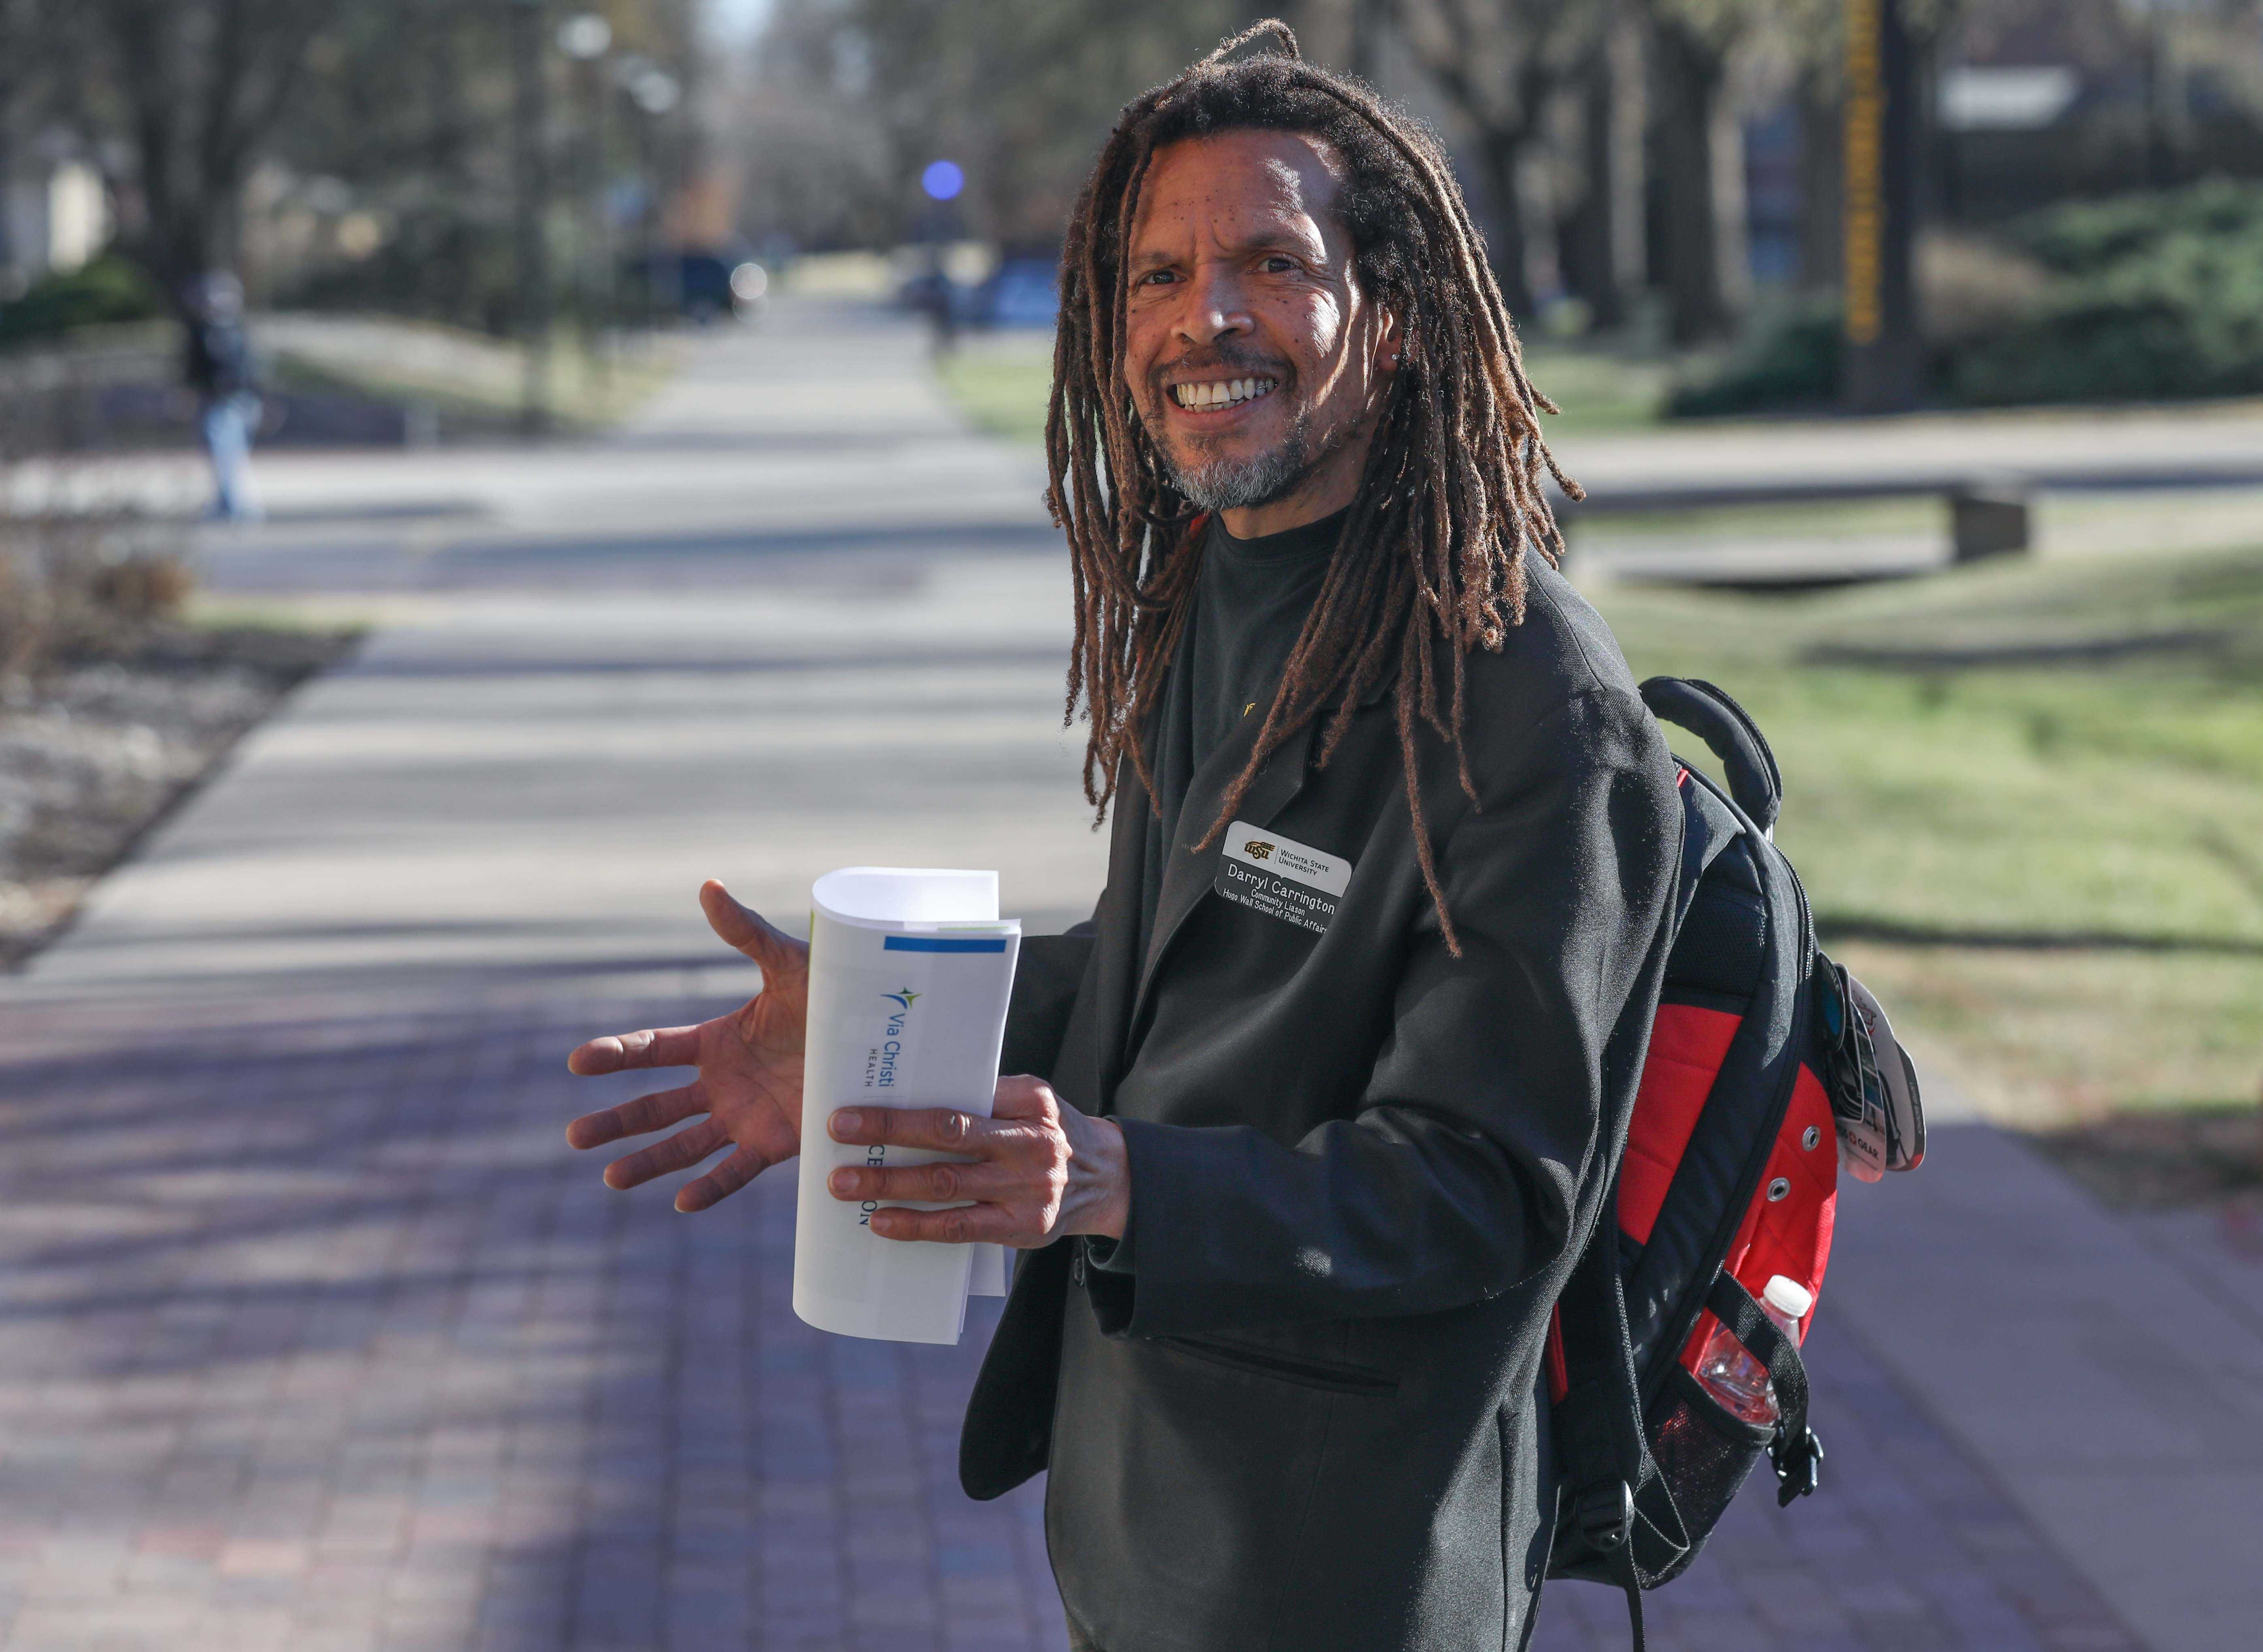 Community liaison Darryl Carrington stands on Parkview, the walkway that stretches from Fairmount Park and neighborhood into WSU.